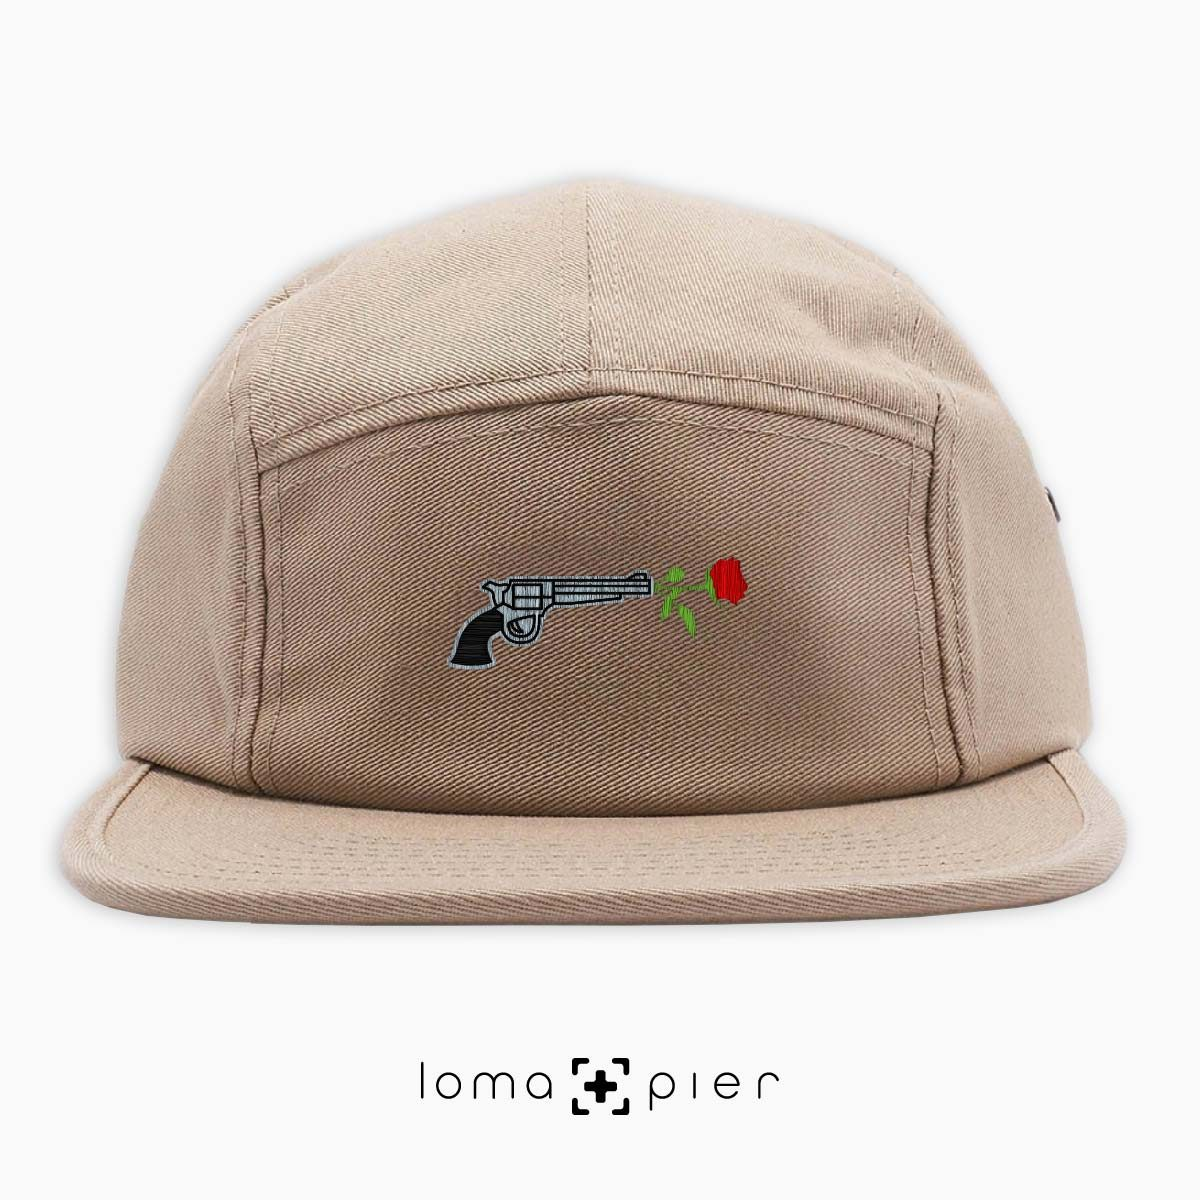 ROSE REVOLVER icon embroidered on a khaki cotton 5-panel hat with multicolor thread by loma+pier hat store